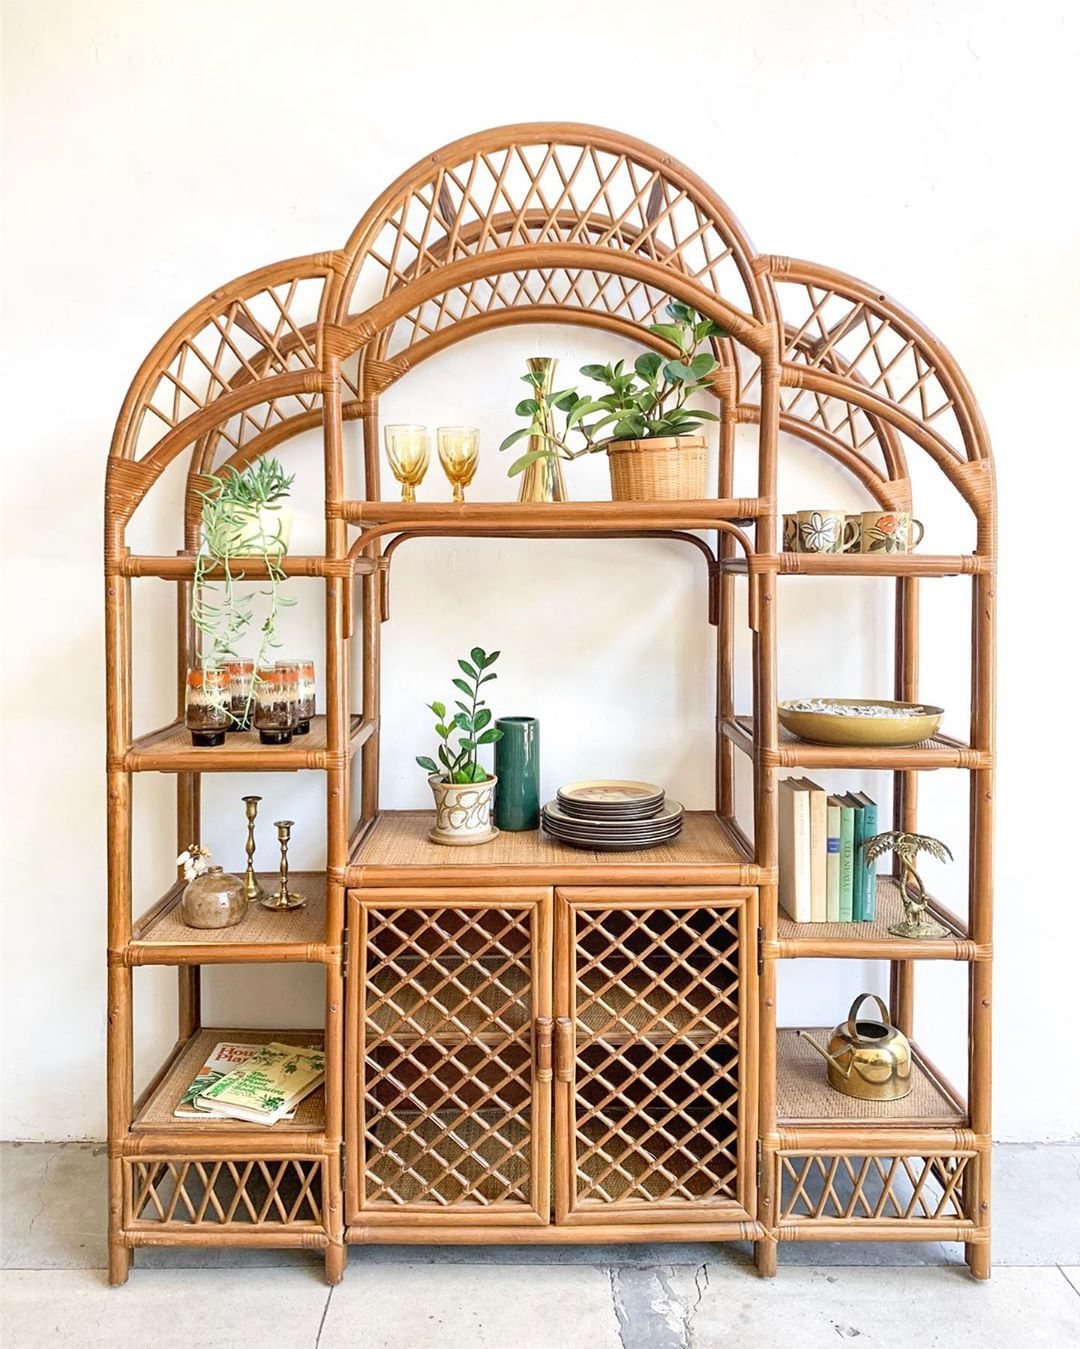 rattan shelves with curve on top, boards in the middle, cupboard below